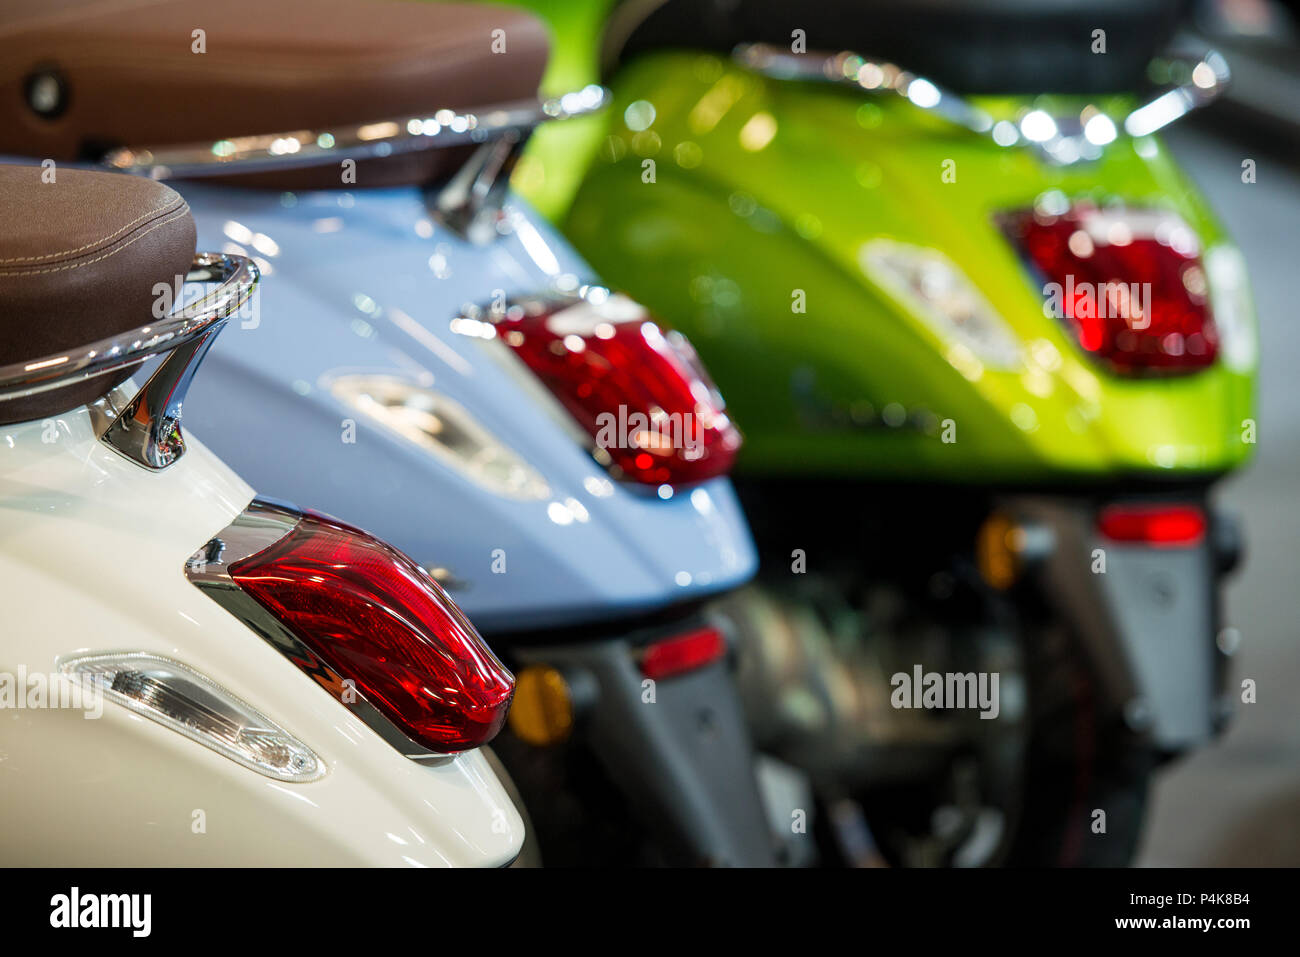 Detail of motorcycle stoplights on three retro scooters - Stock Image